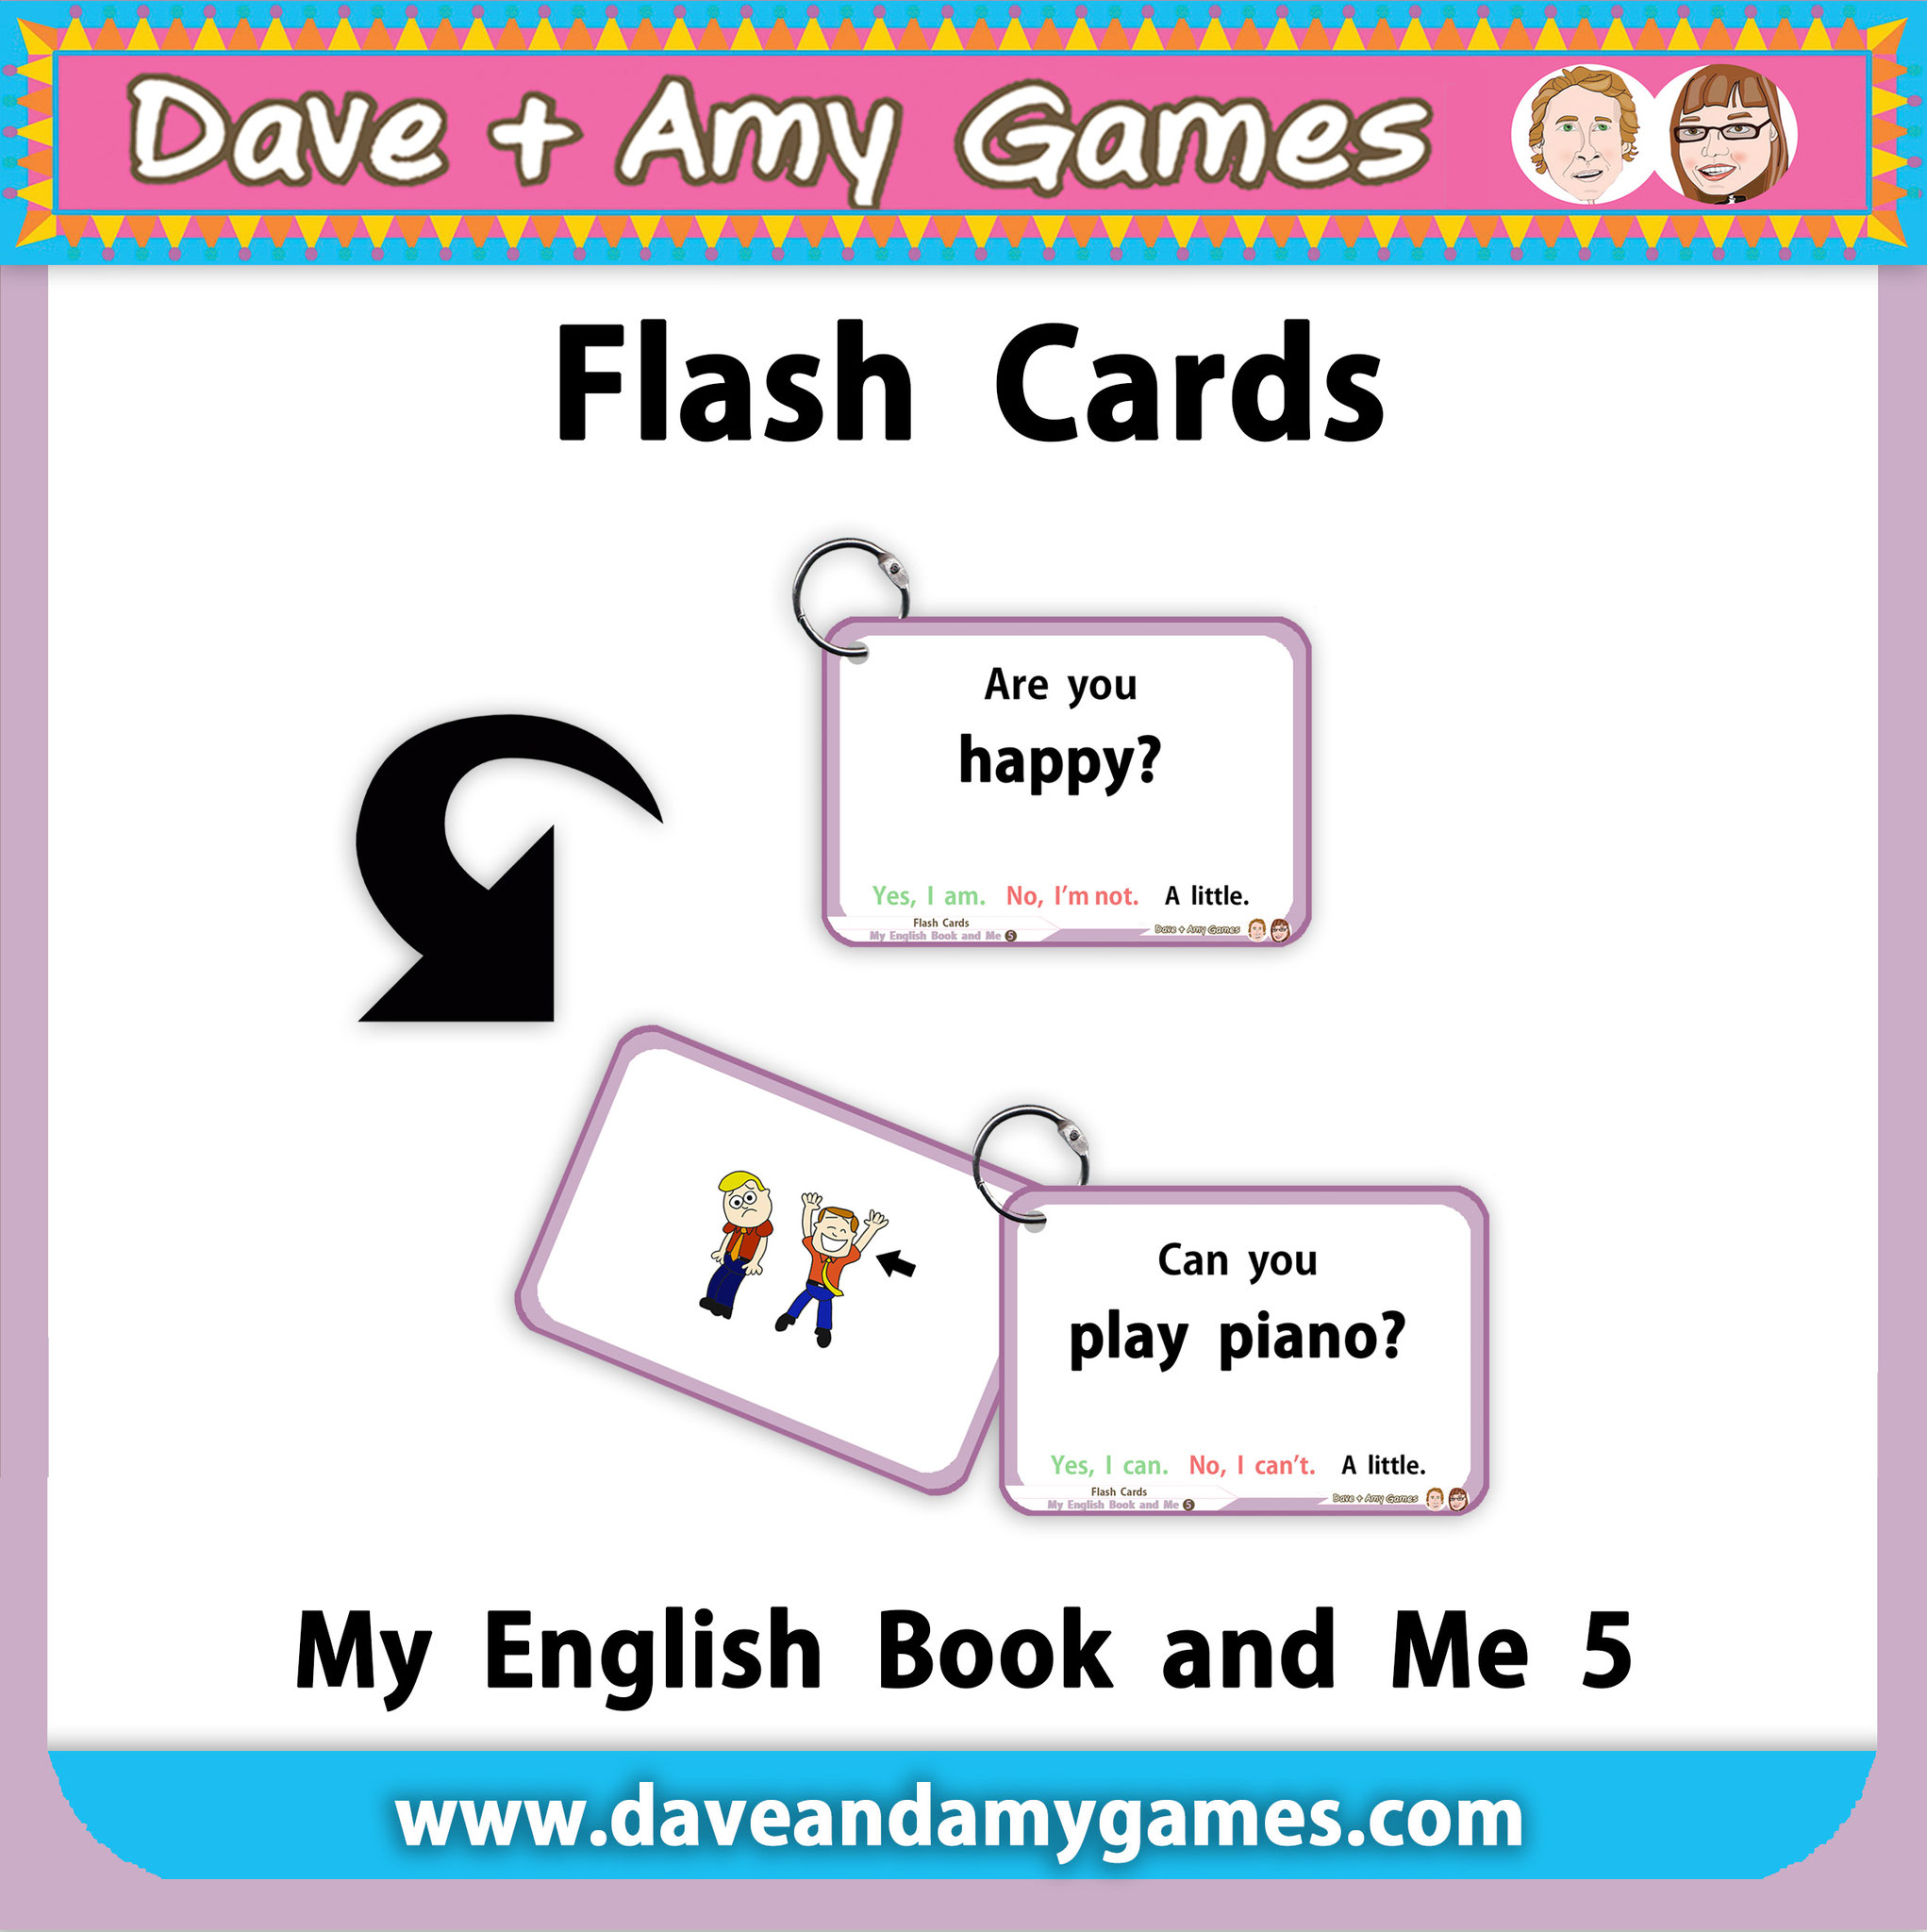 MEB5 Flashcards